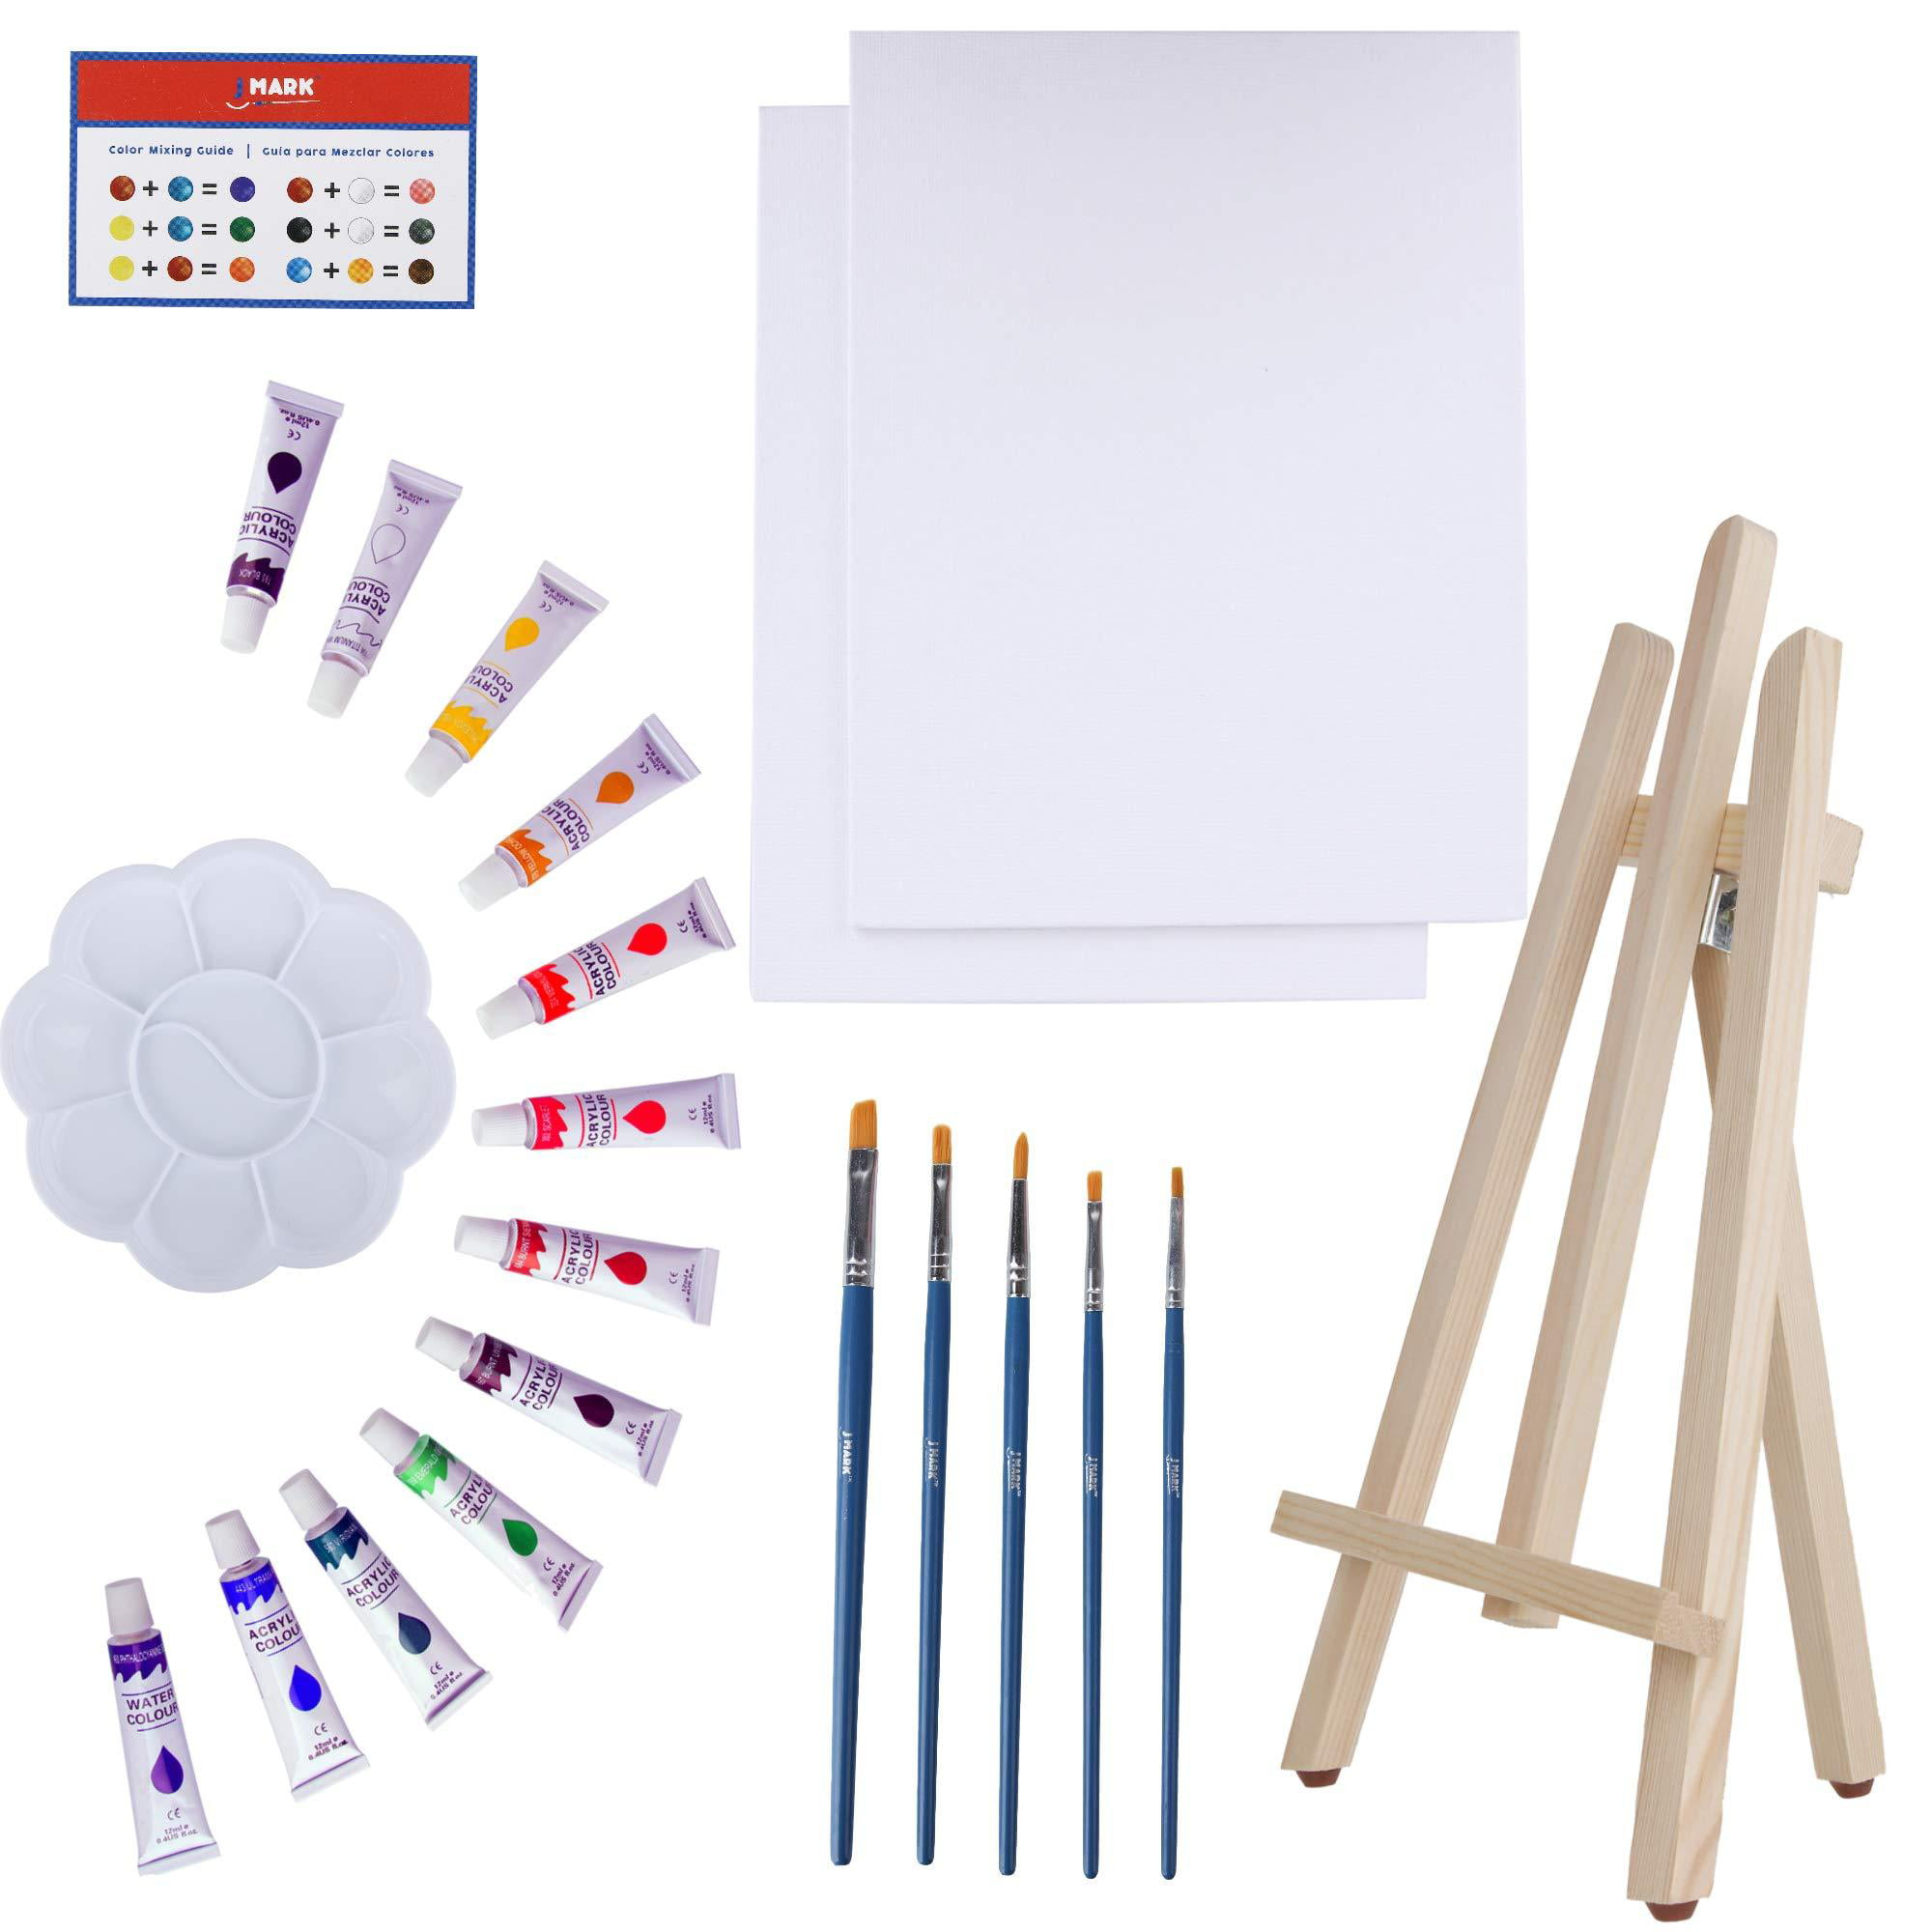 Art Canvas Paint Set Supplies 22 Piece Canvas Acrylic Painting Kit With Wood Easel 8x10 Inch Canvases 12 Non Toxic Washable Paints 5 Brushes Palette And Color Mixing Guide Walmart Com Walmart Com